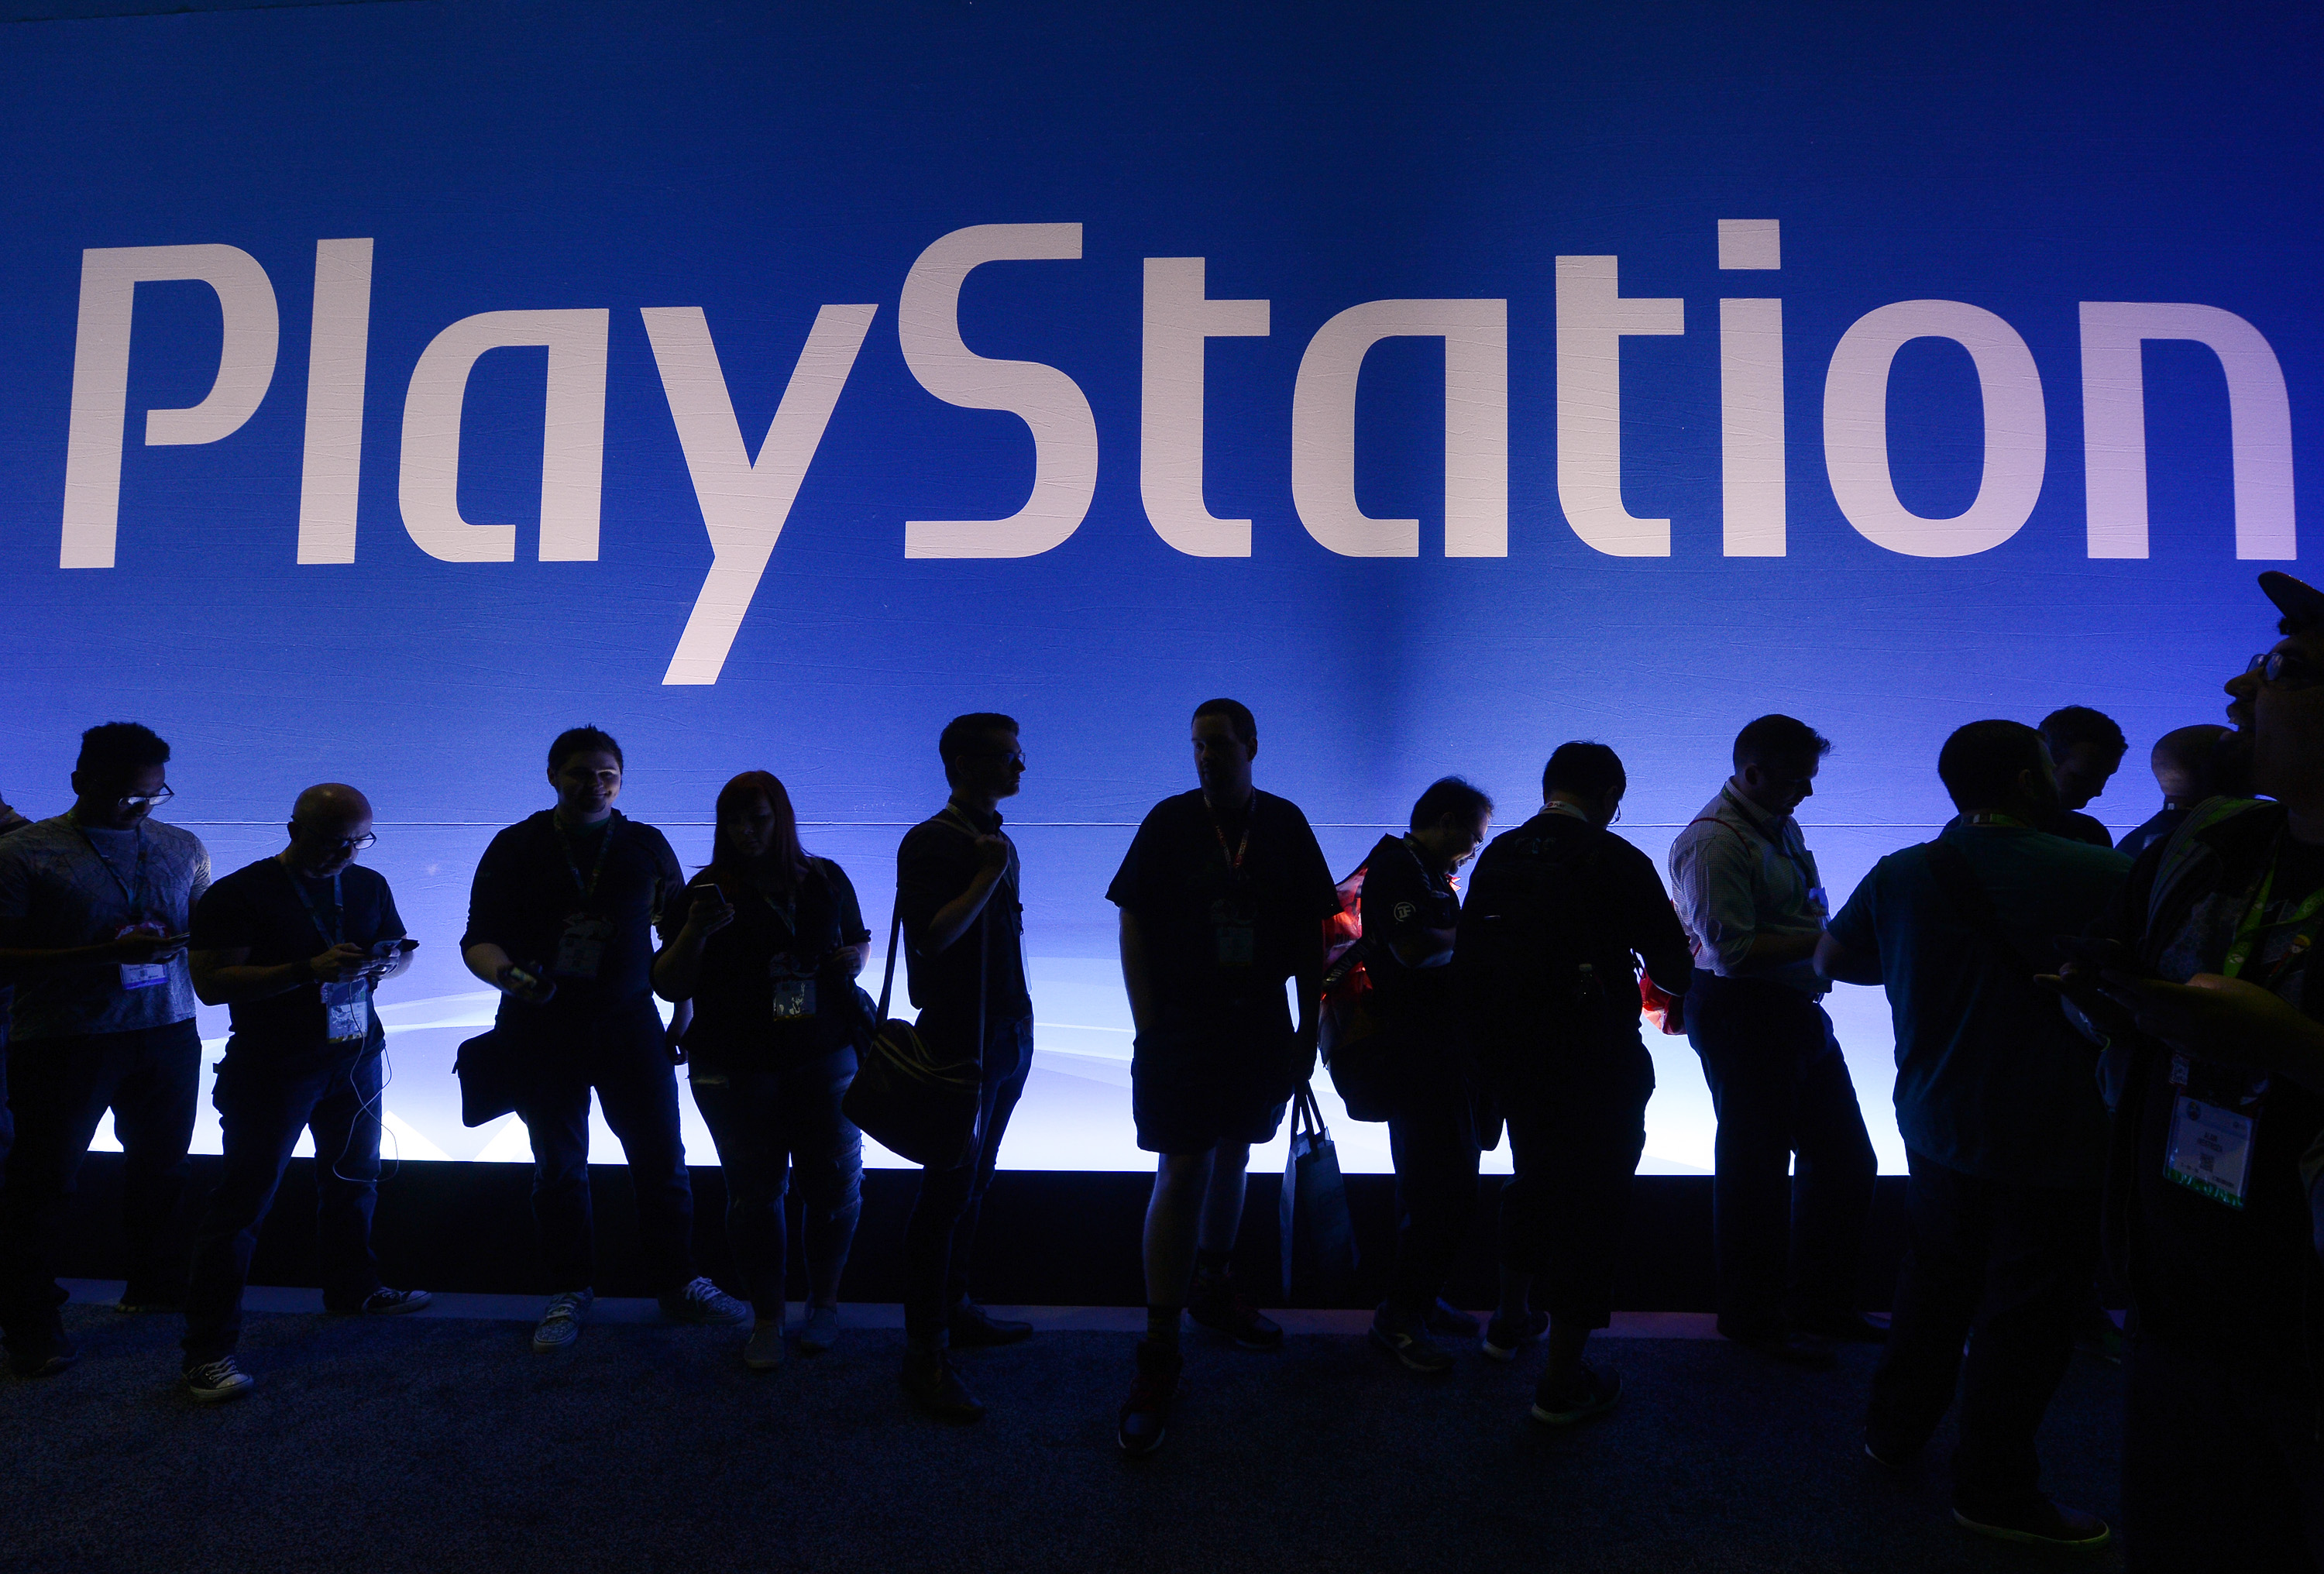 Gamers wait in line to enter Sony Playstation booth during the annual E3 2016 gaming conference at the Los Angeles Convention Center on June 14, 2016 in Los Angeles, California.